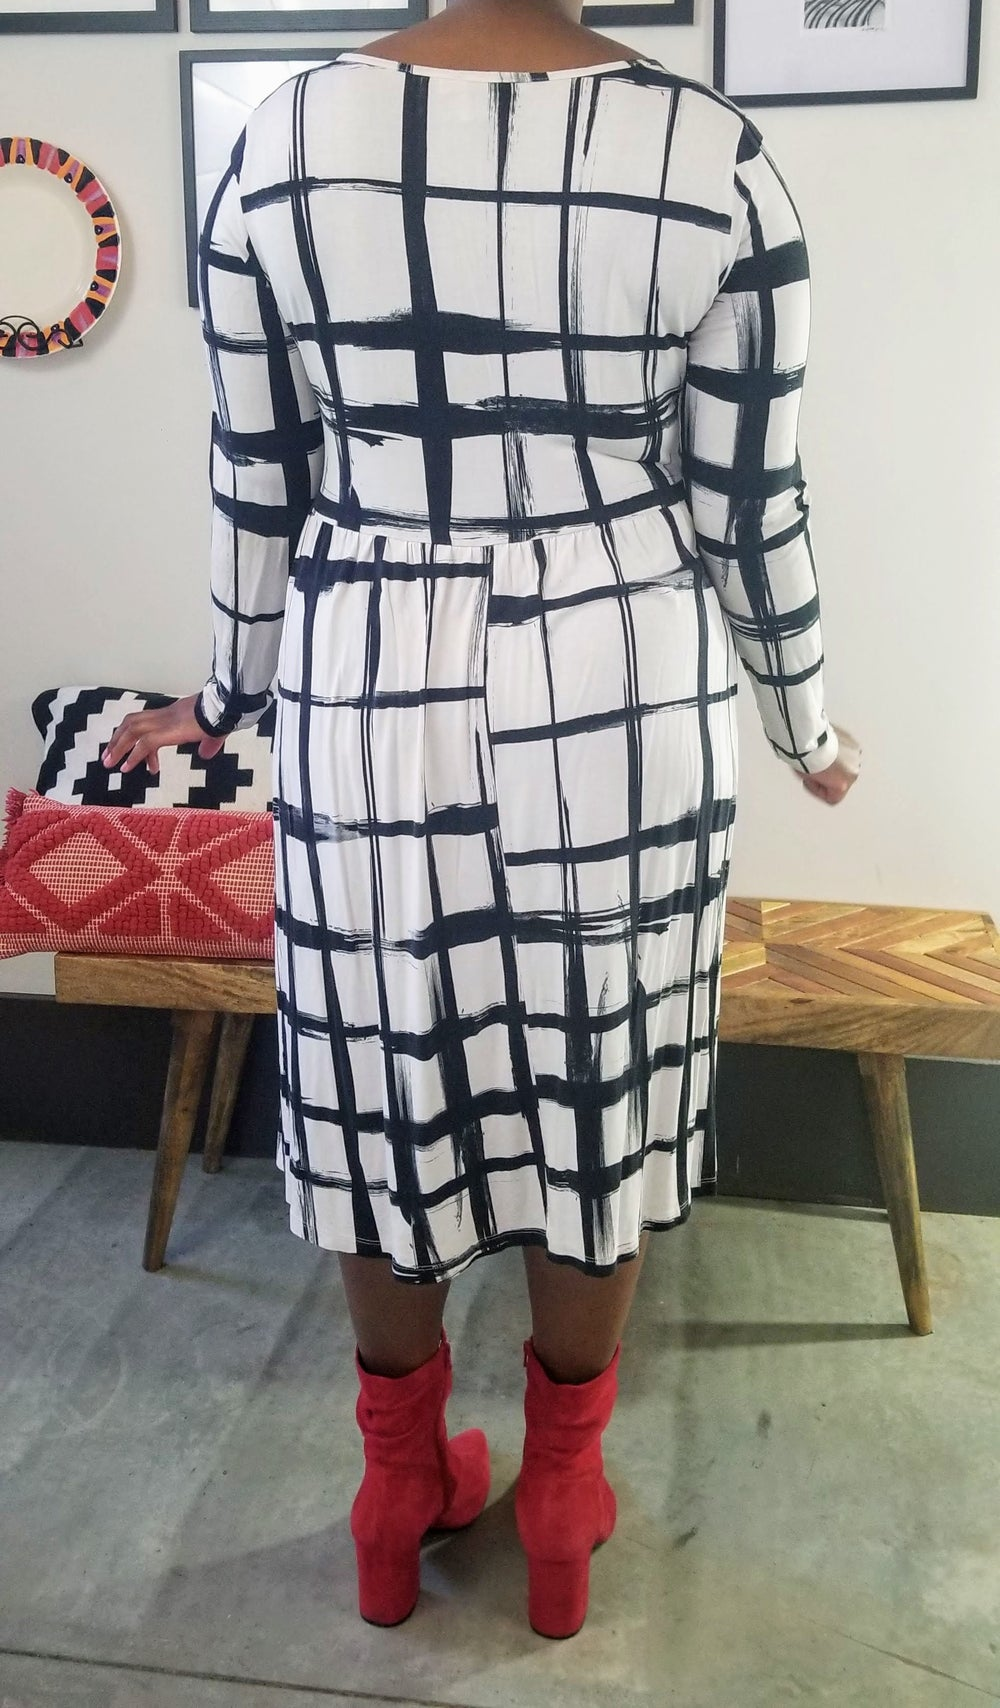 Image of ASOS Curve Long Sleeve Black and White Brushstroke Check Dress - Women's Plus Size 18